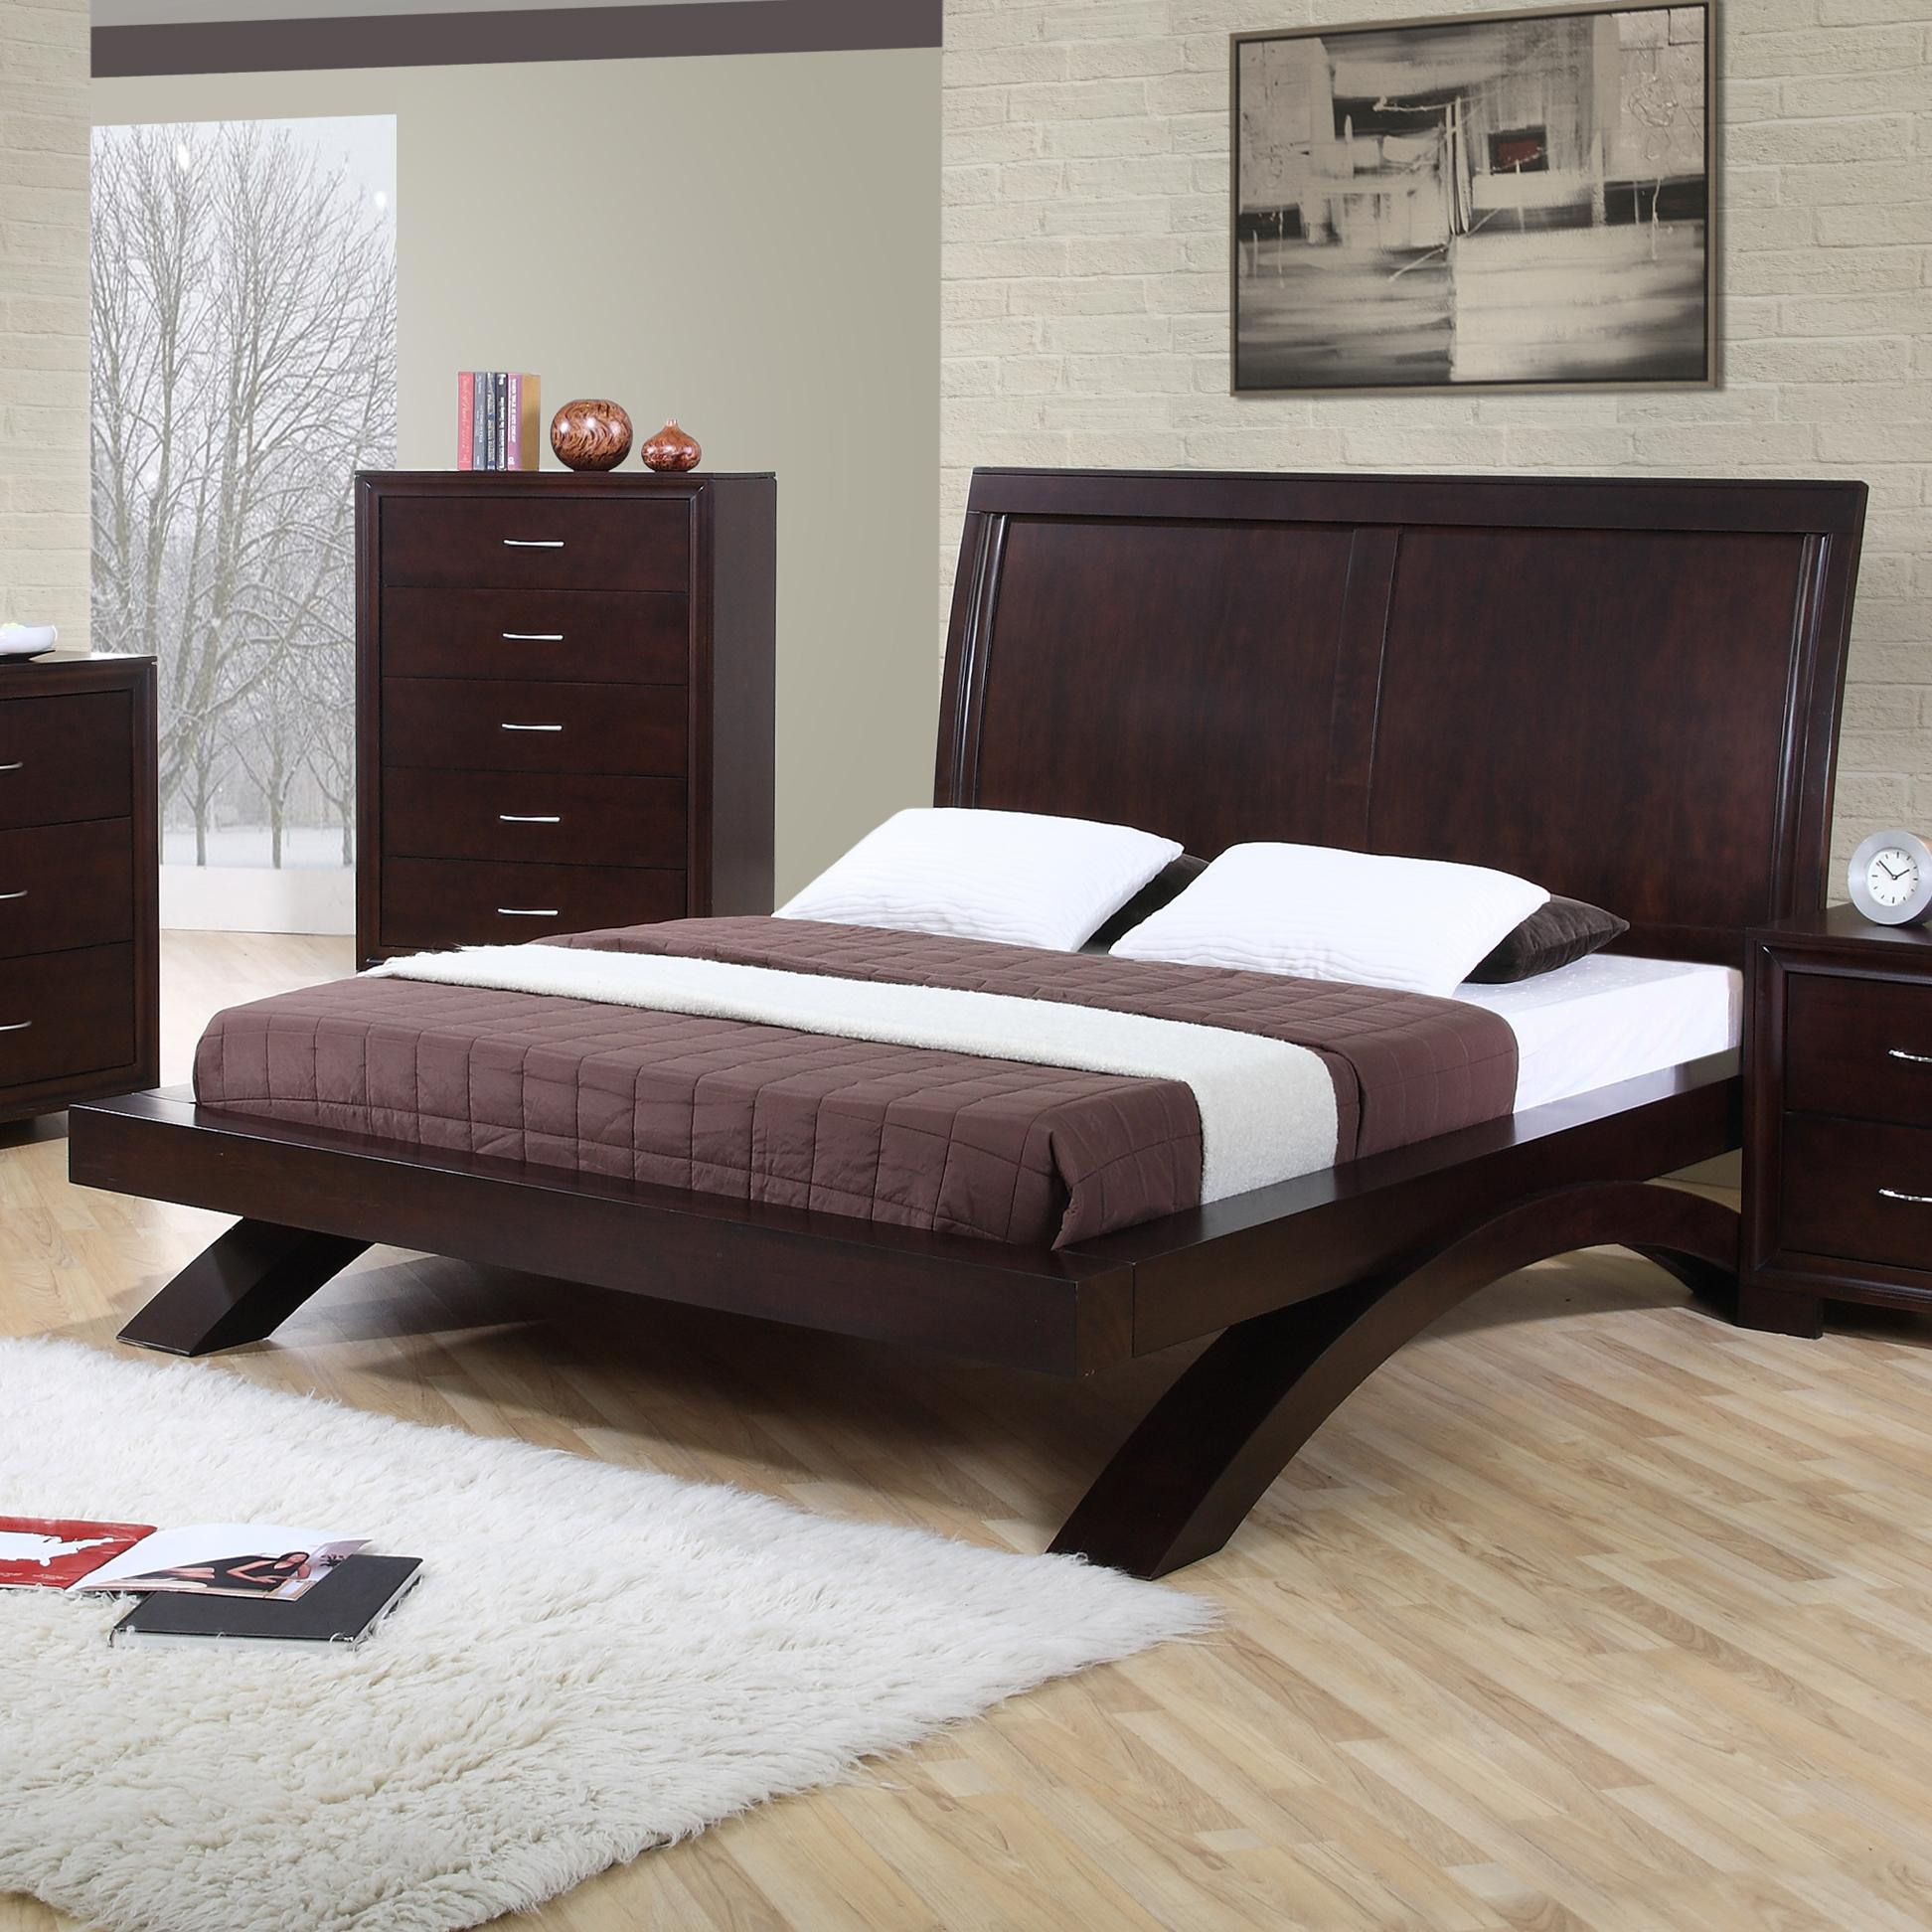 Beds And Beds Raven King Contemporary Platform Bed By Elements International At Becker Furniture World